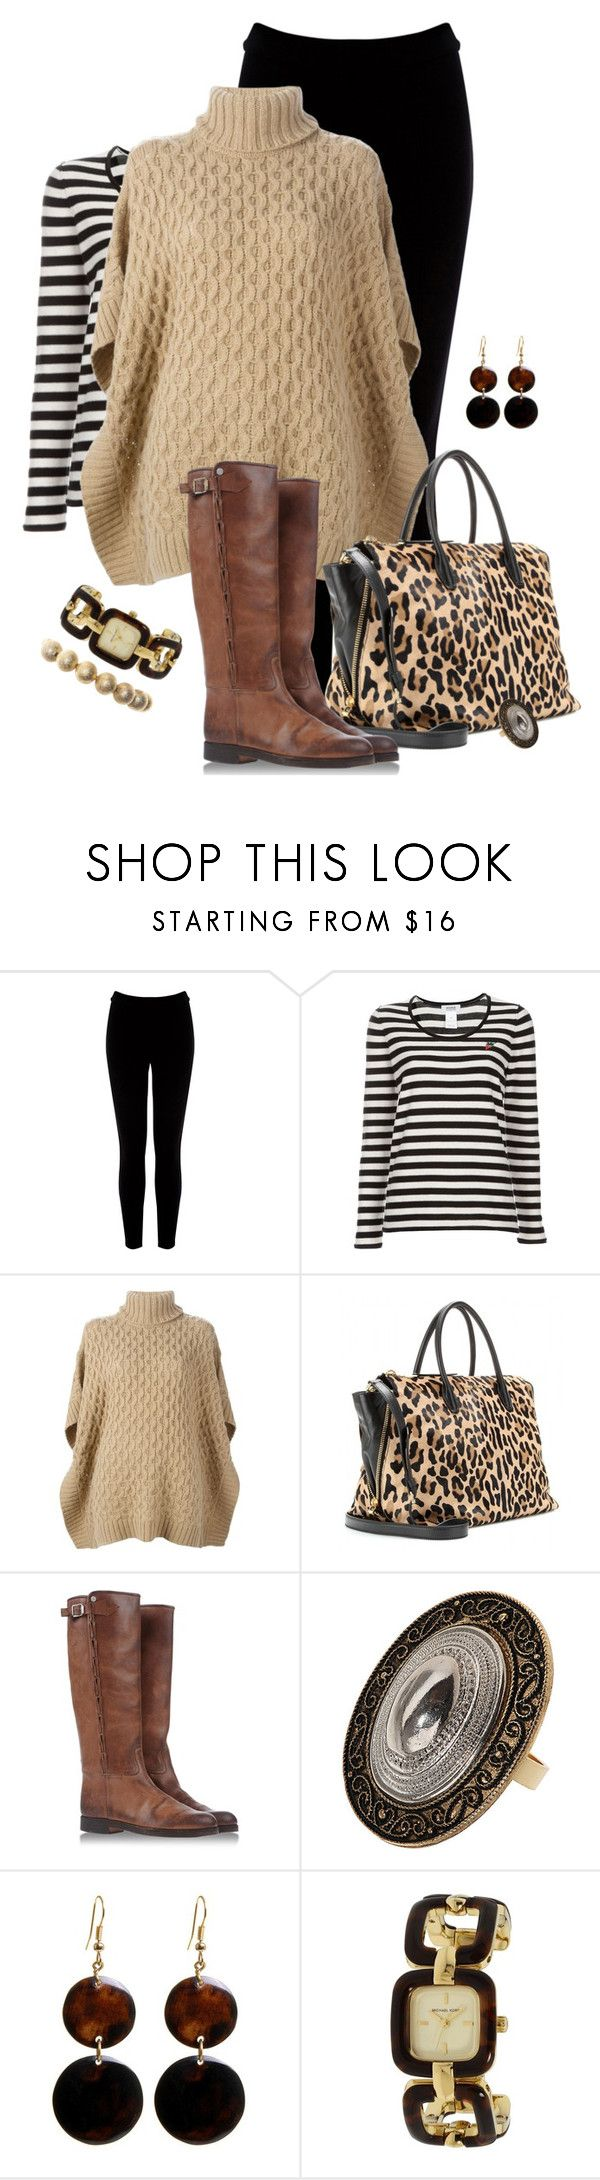 """Stripes & Tan"" by fashionista88 ❤ liked on Polyvore featuring Warehouse, Sonia by Sonia Rykiel, MICHAEL Michael Kors, Miu Miu, Golden Goose, Topshop, Manumit, Michael Kors and Wet Seal"